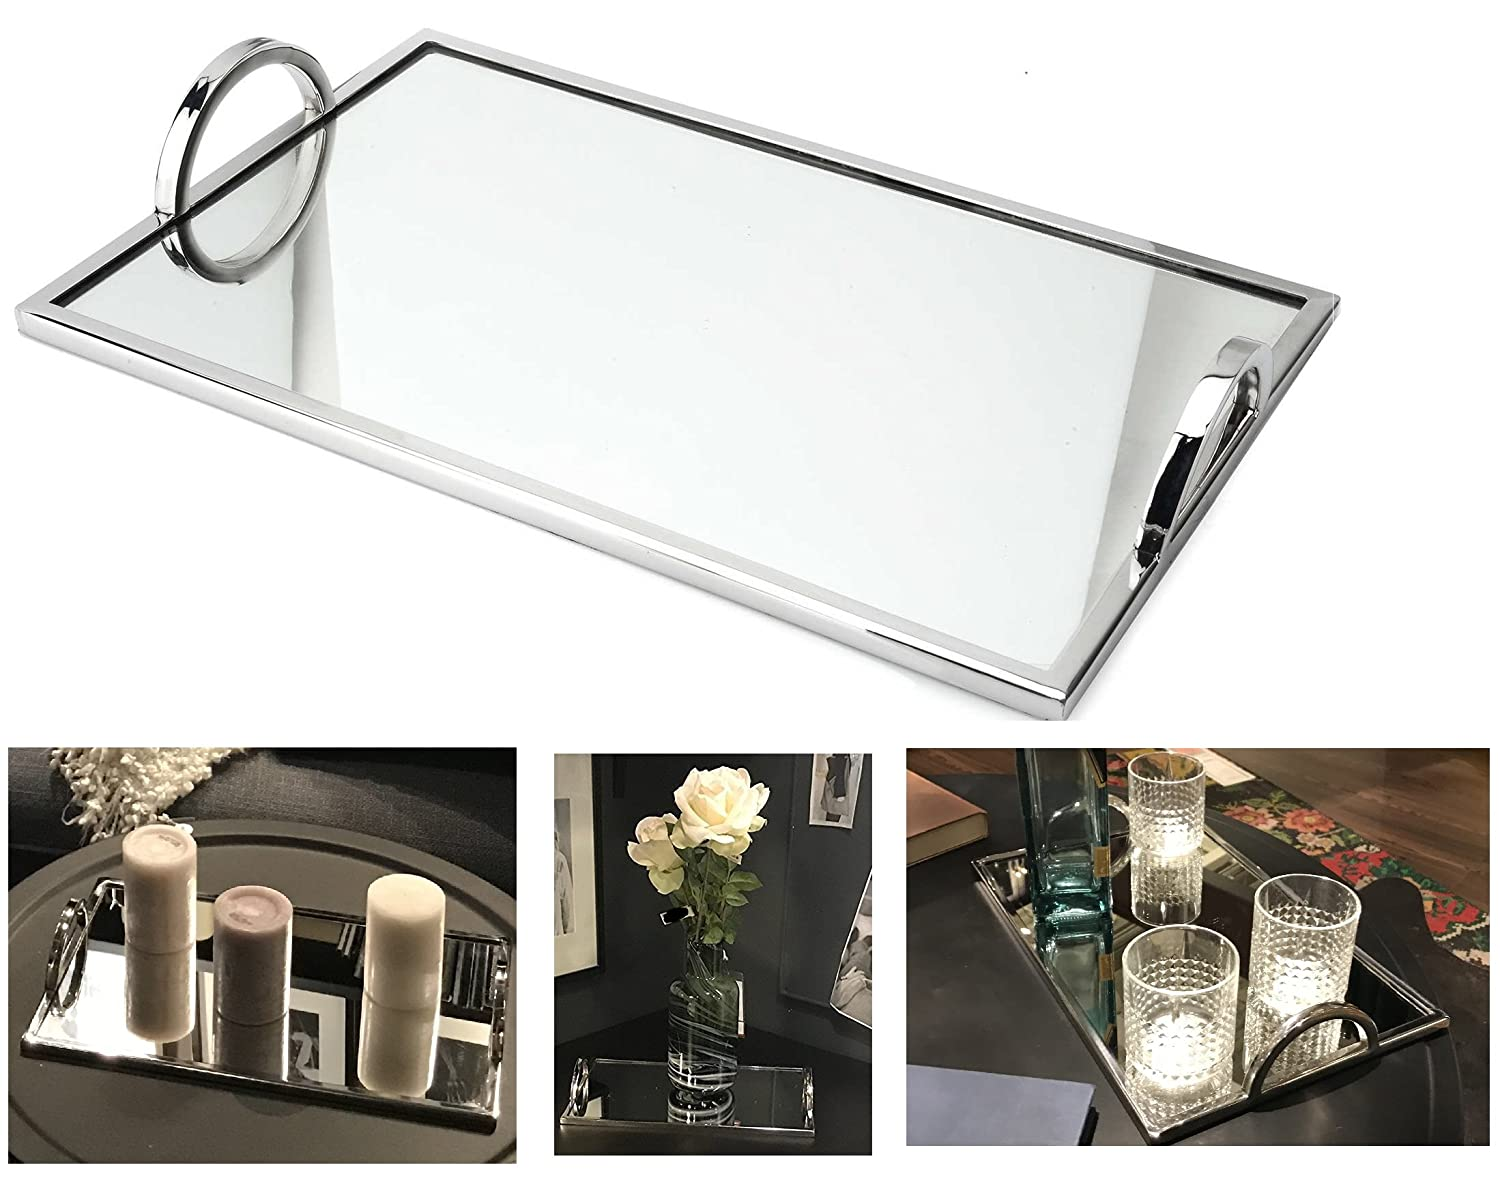 Elegant Silver Mirror Tray - with Chrome Edging and Handles - Rectangle Vanity Tray - Ideal for Ottoman, Coffee Table, Perfume Set, Living Room, Dining Room, Whiskey Decanter Set. 17 x 12 Inches